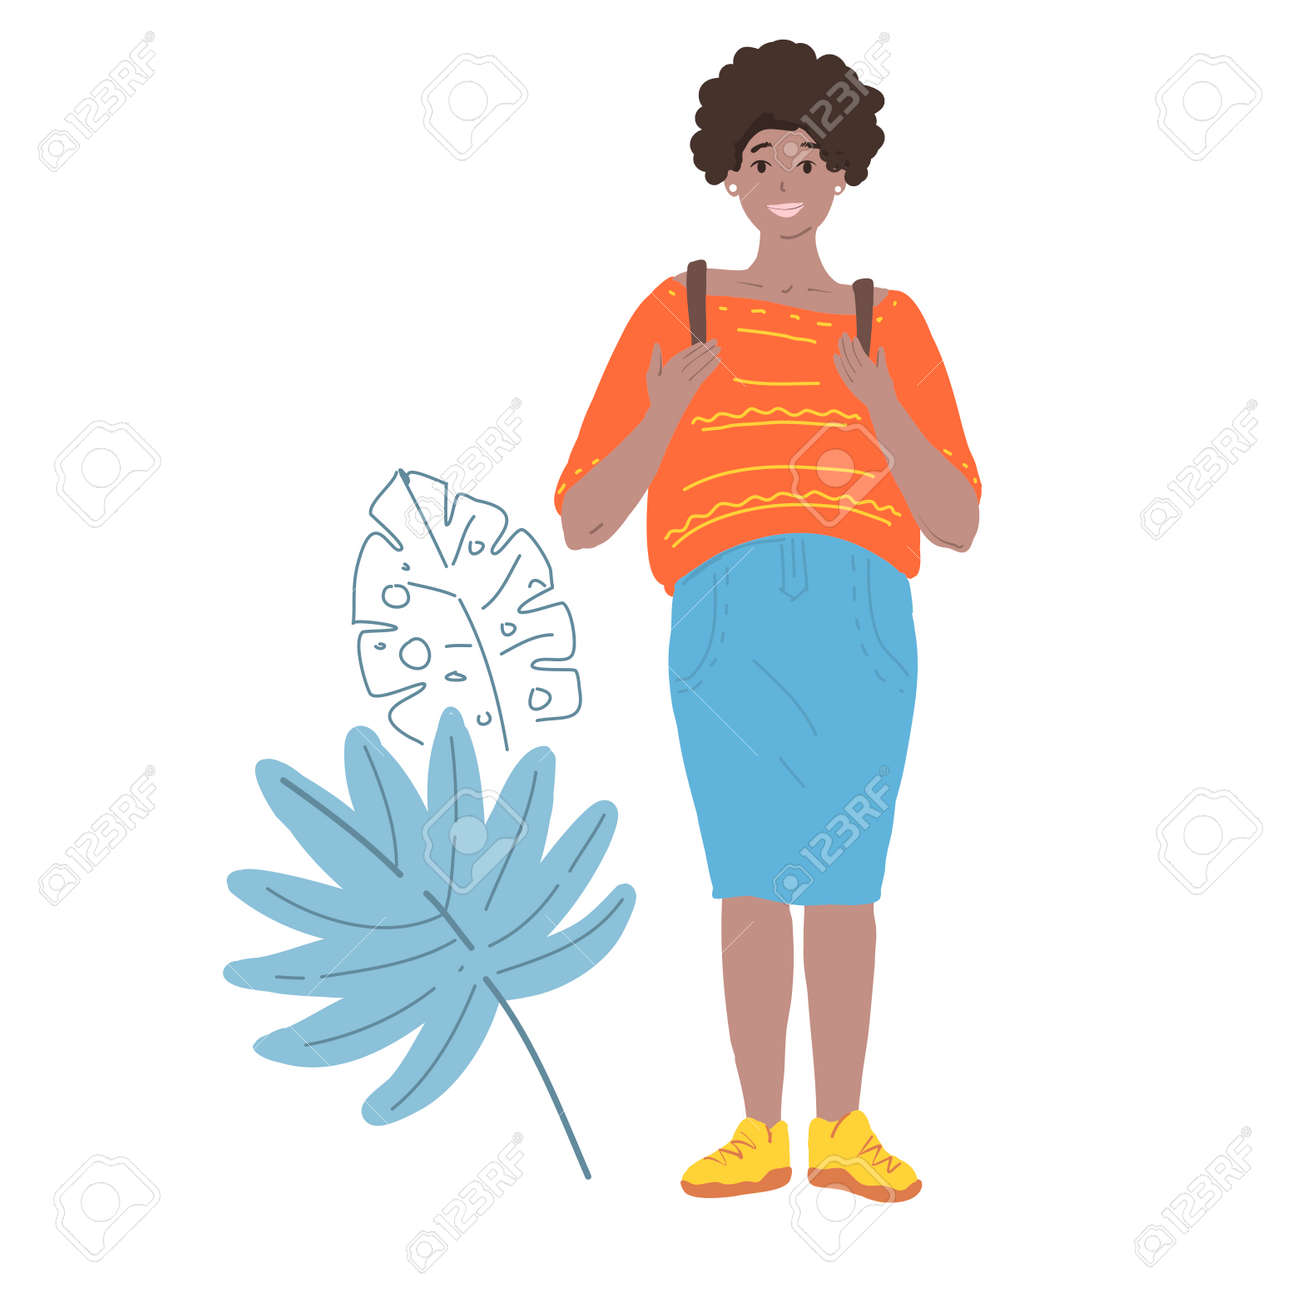 Smiling beatiful woman with afro hairstyle holding backpack isolated vector illustration - 163901228